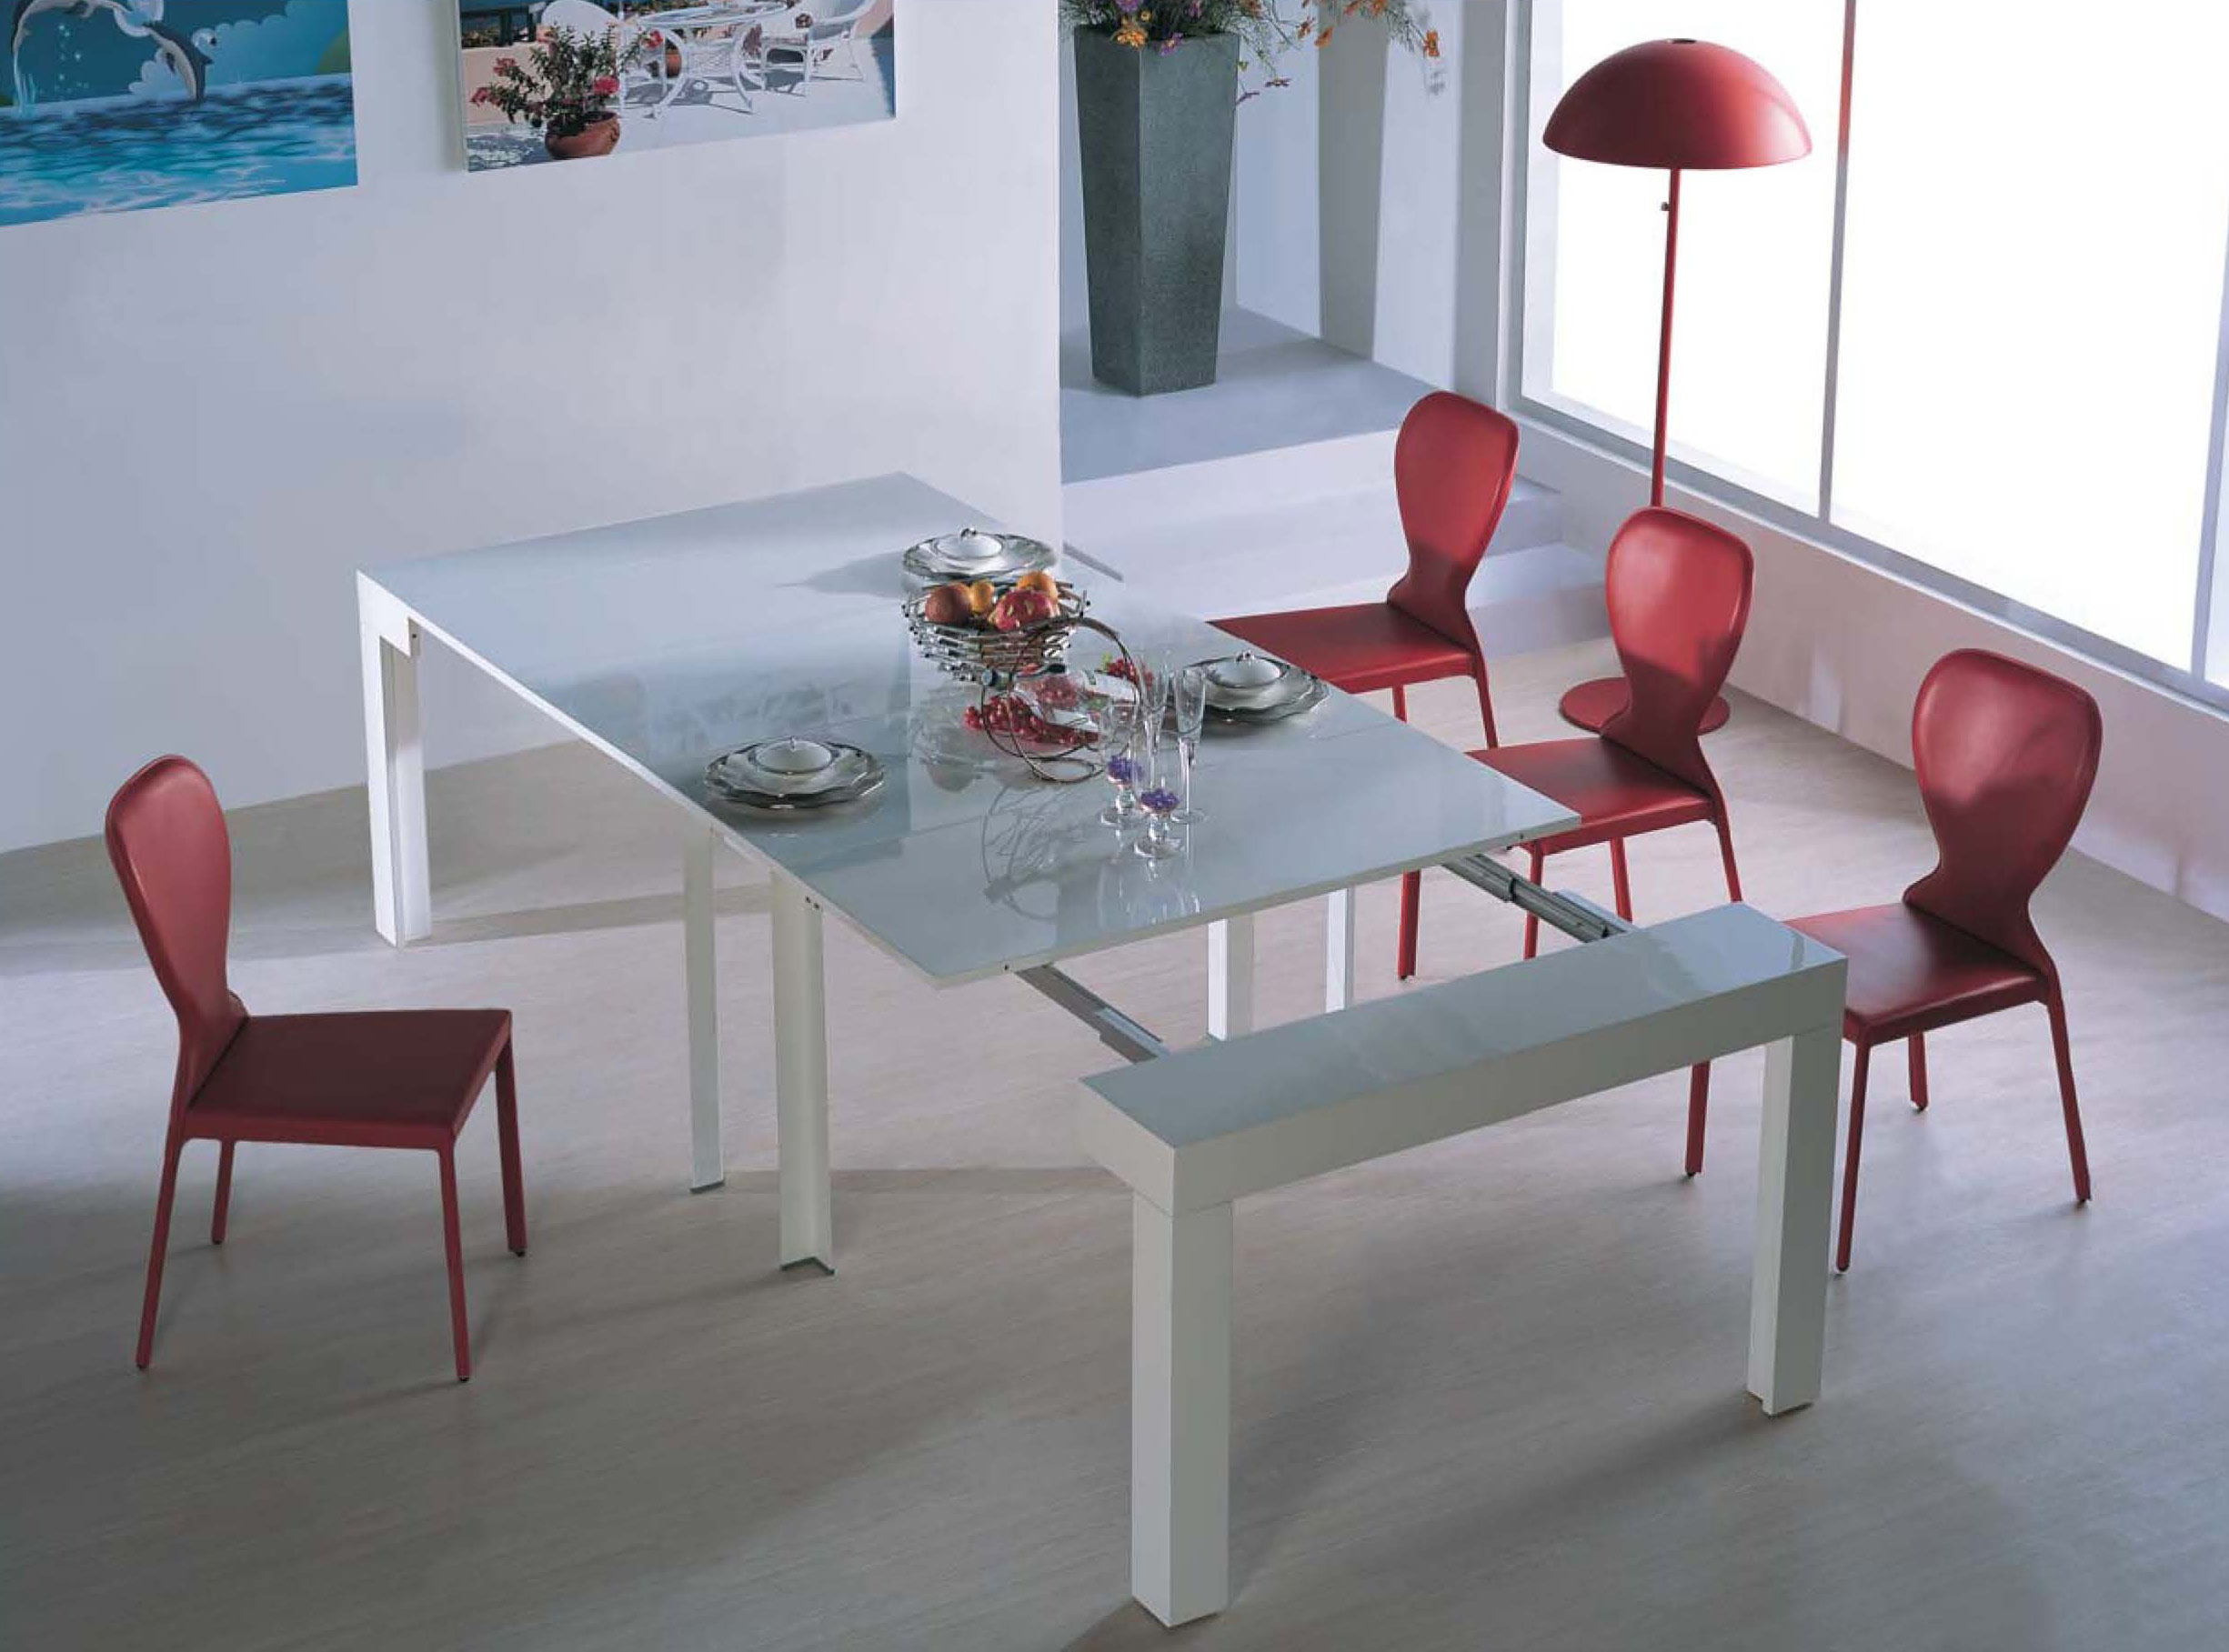 Exceptional Cramped Dining Room Space? Why Expanding Dining Tables Are The Answer